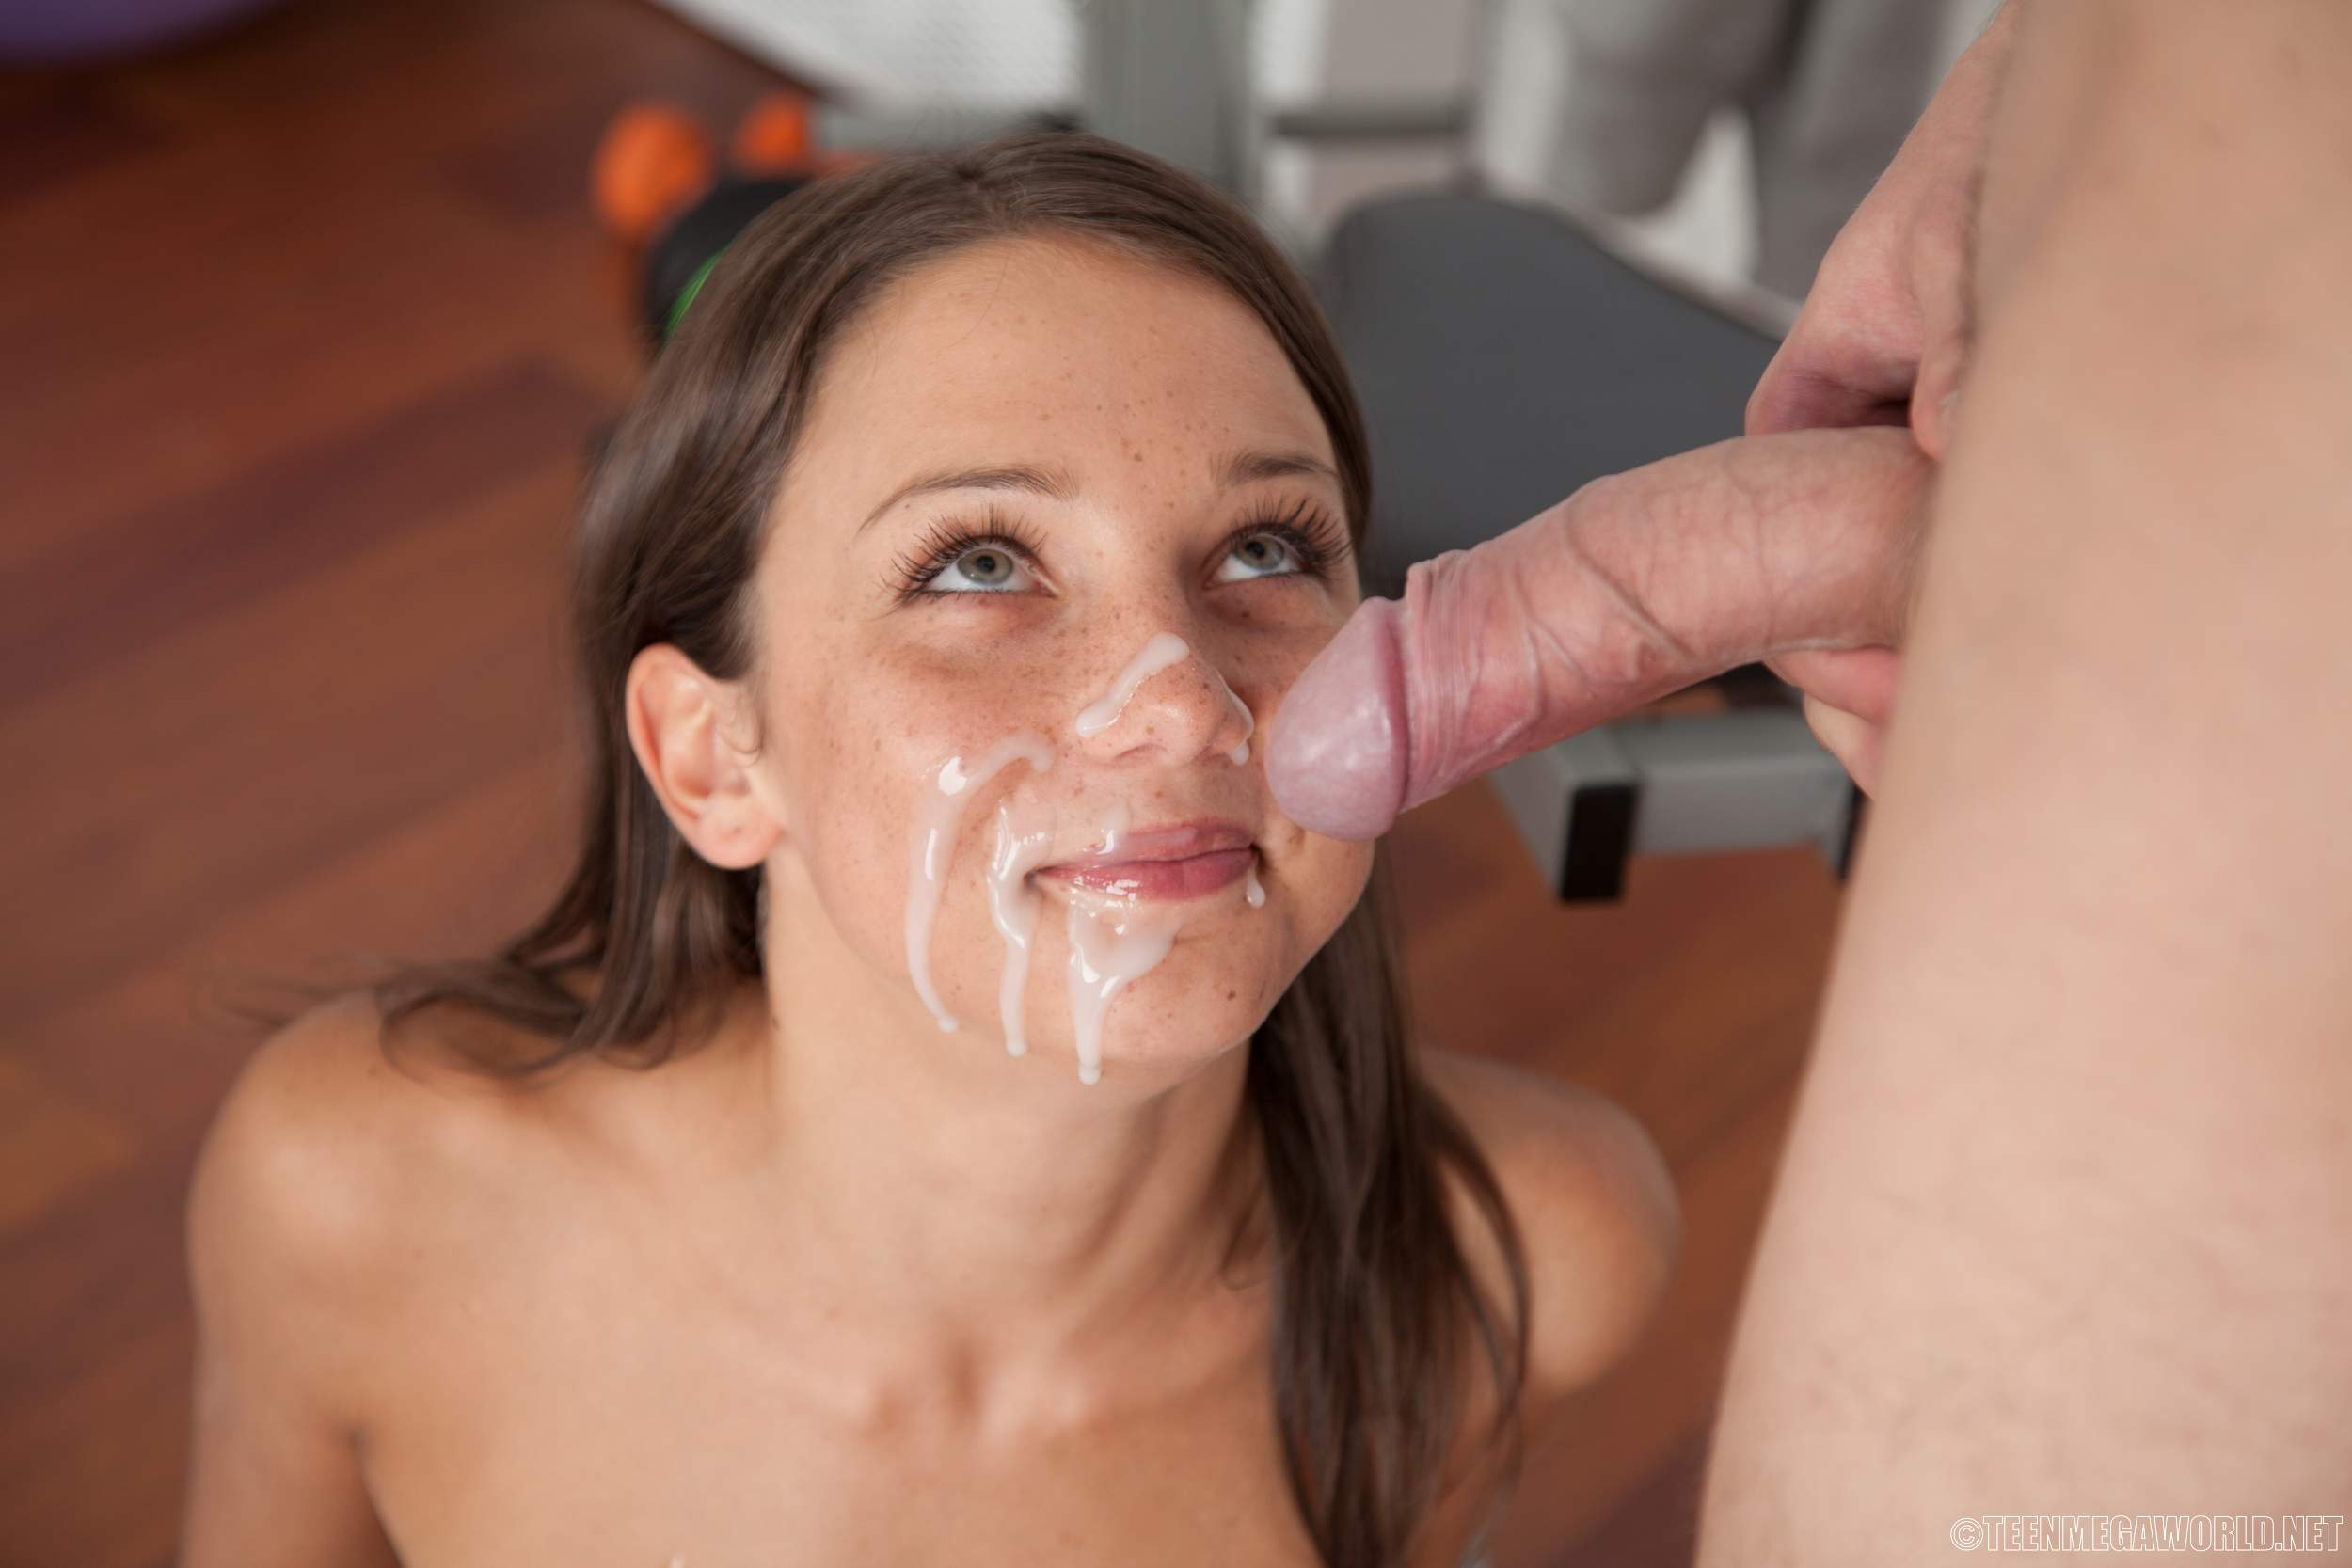 Victoria swinger gets hot cum in her mouth from big cocks 8